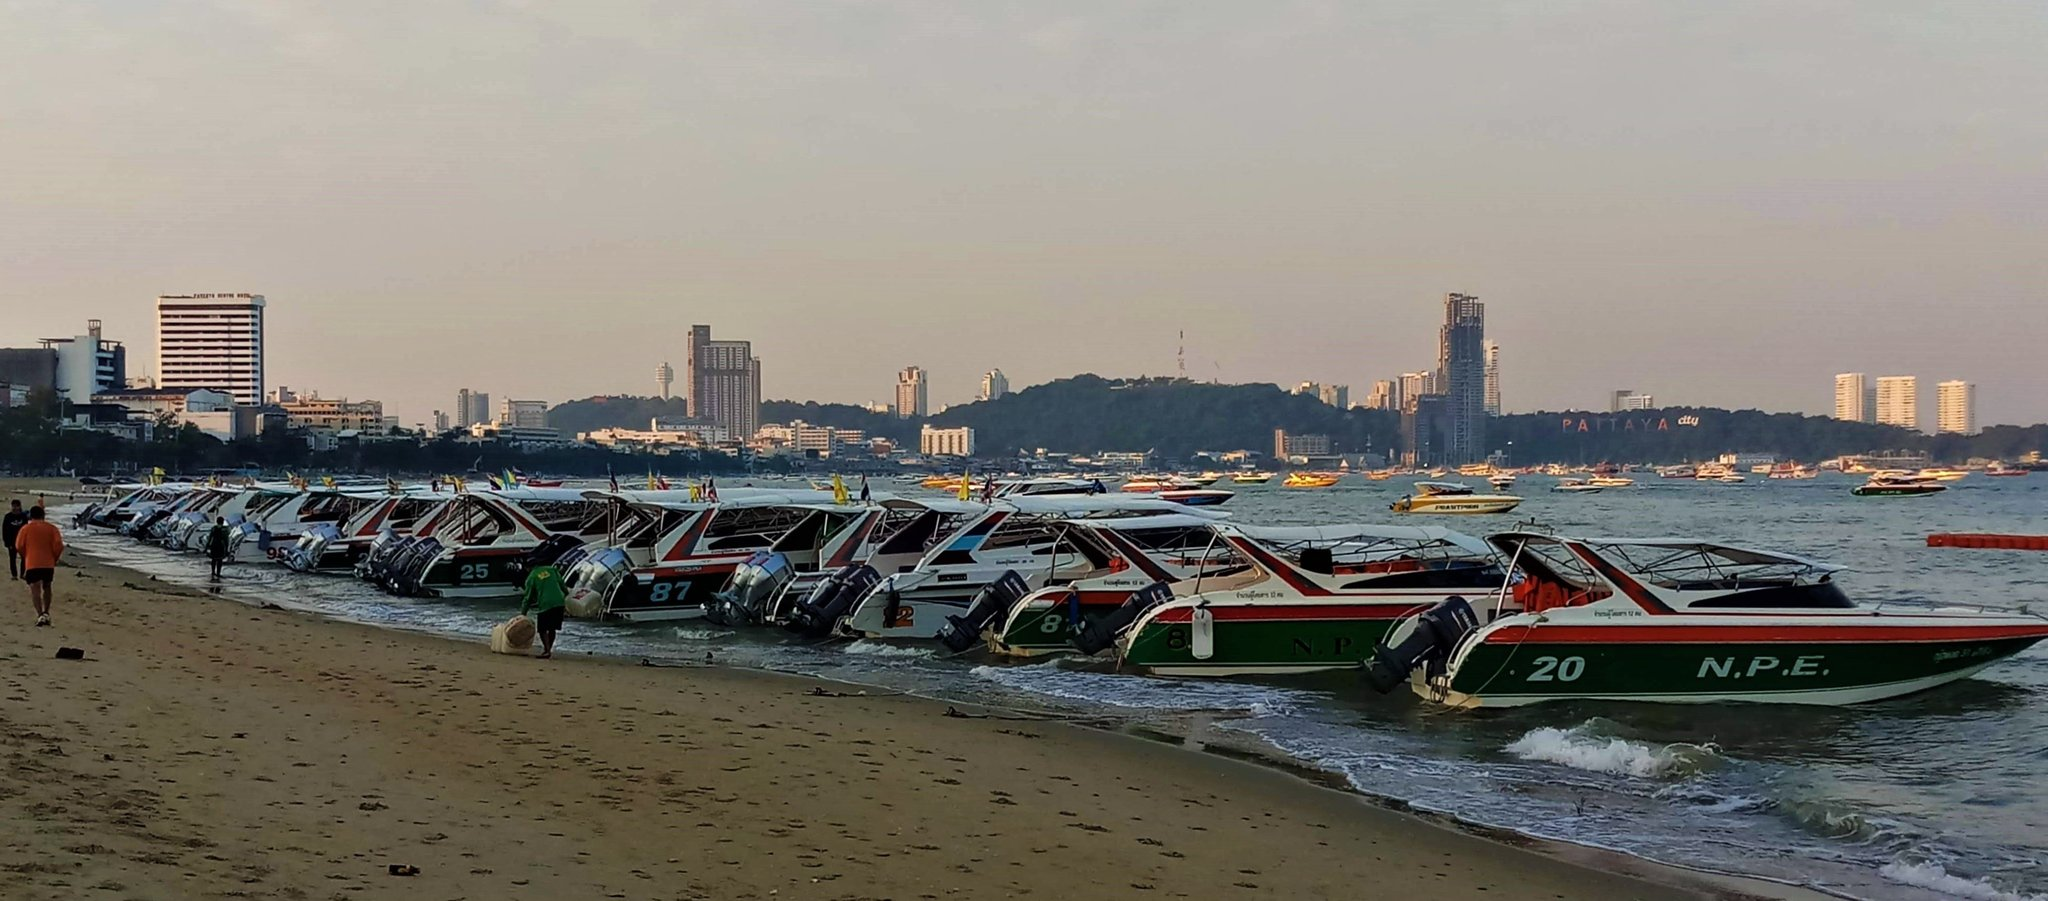 3. Early morning Pattaya - open for business!.jpg